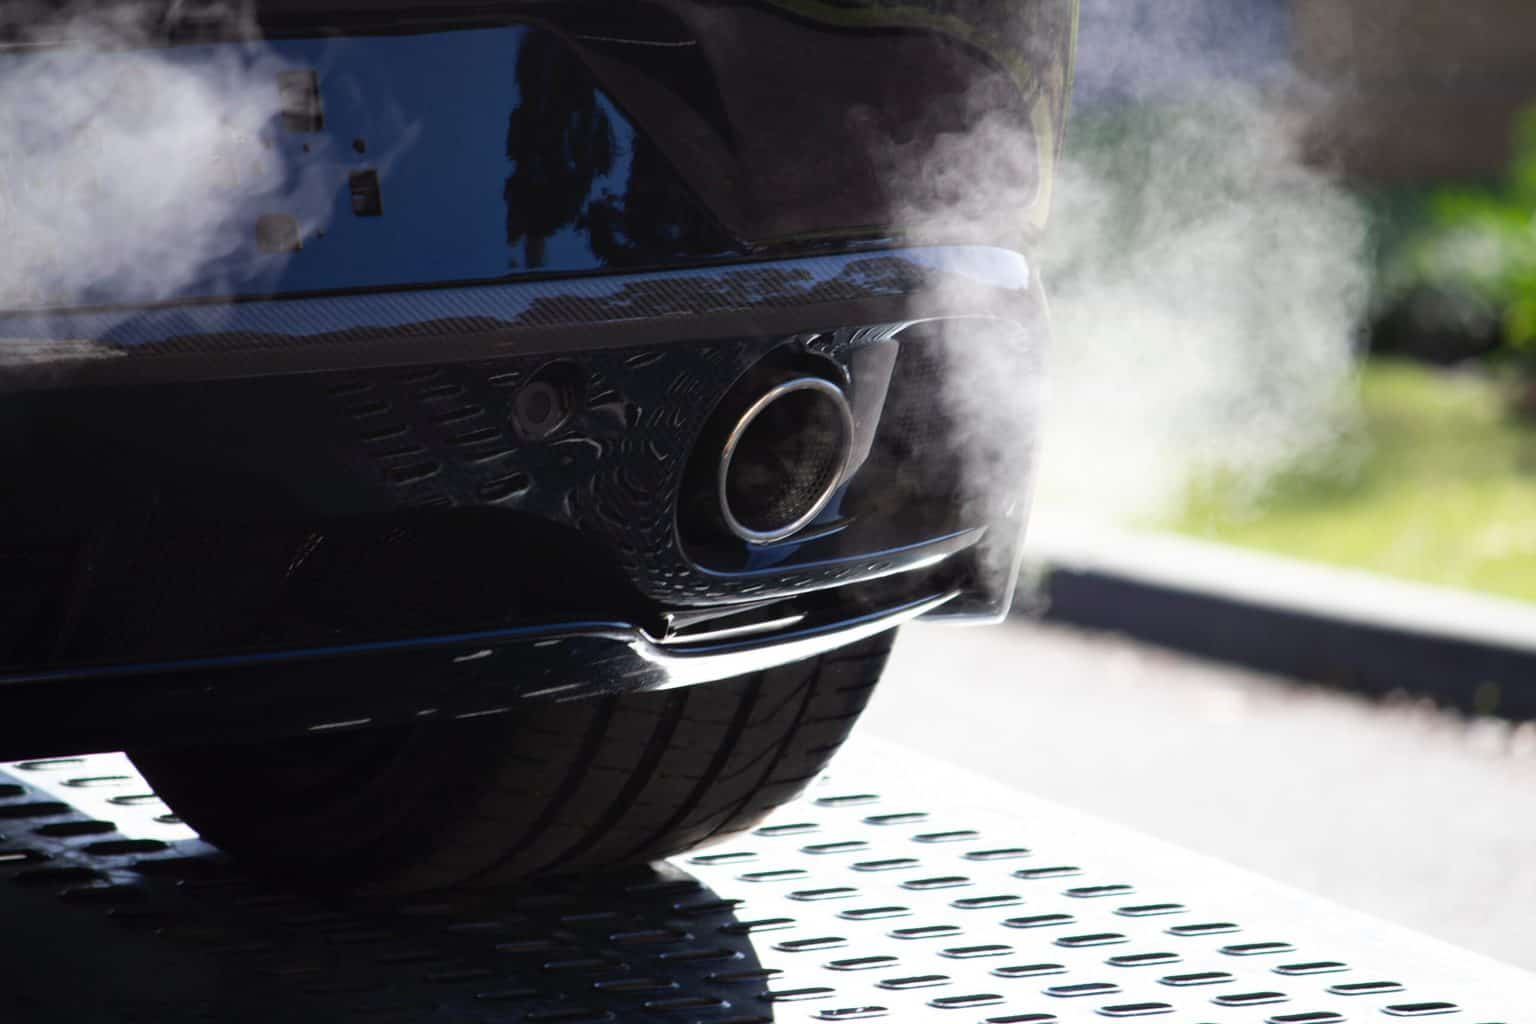 An exhaust of a car with smoke